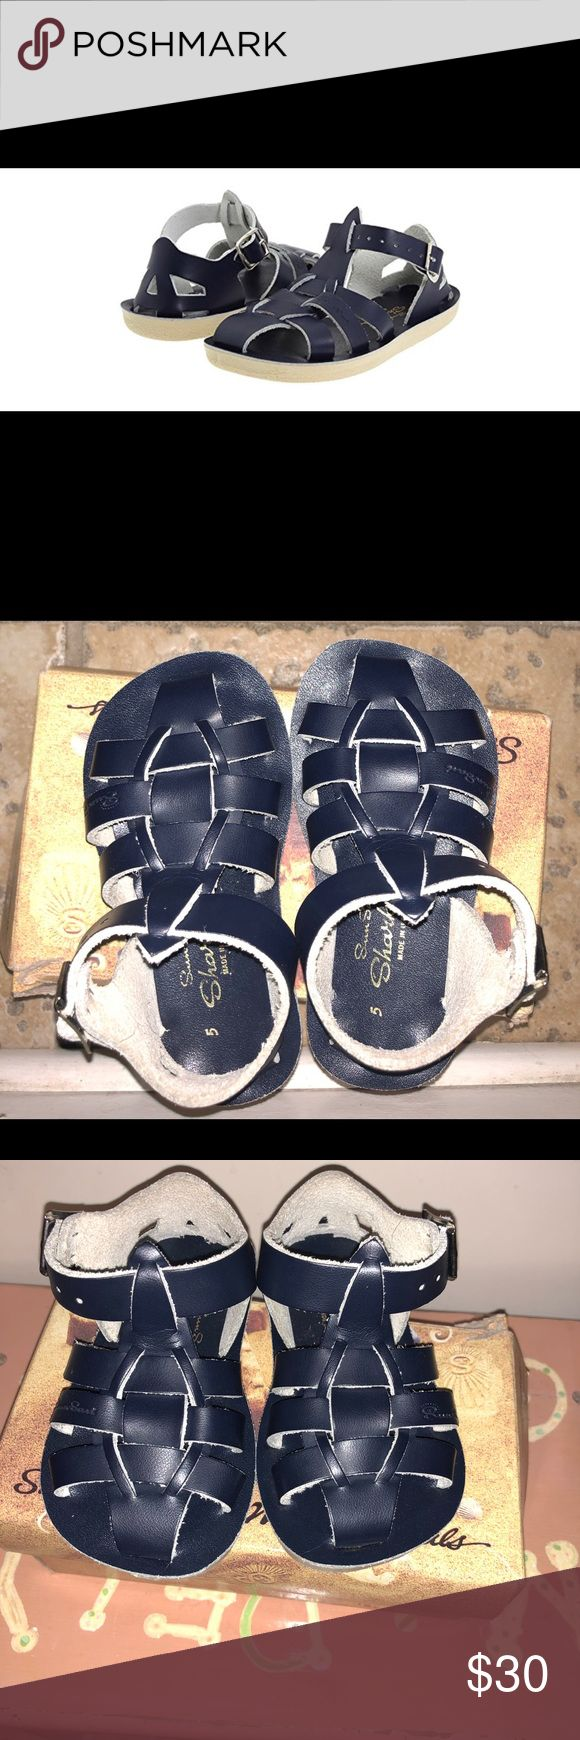 Brand New!!!!! Sun sans Sharks-navy size 5 toddler Salt water sandals by Hoy. Brand new ( only out of box for pictures) never even tried on. Beautiful navy sandals-perfect for Easter, spring, or summer! Size 5 in toddler. Salt Water Sandals by Hoy Shoes Sandals & Flip Flops